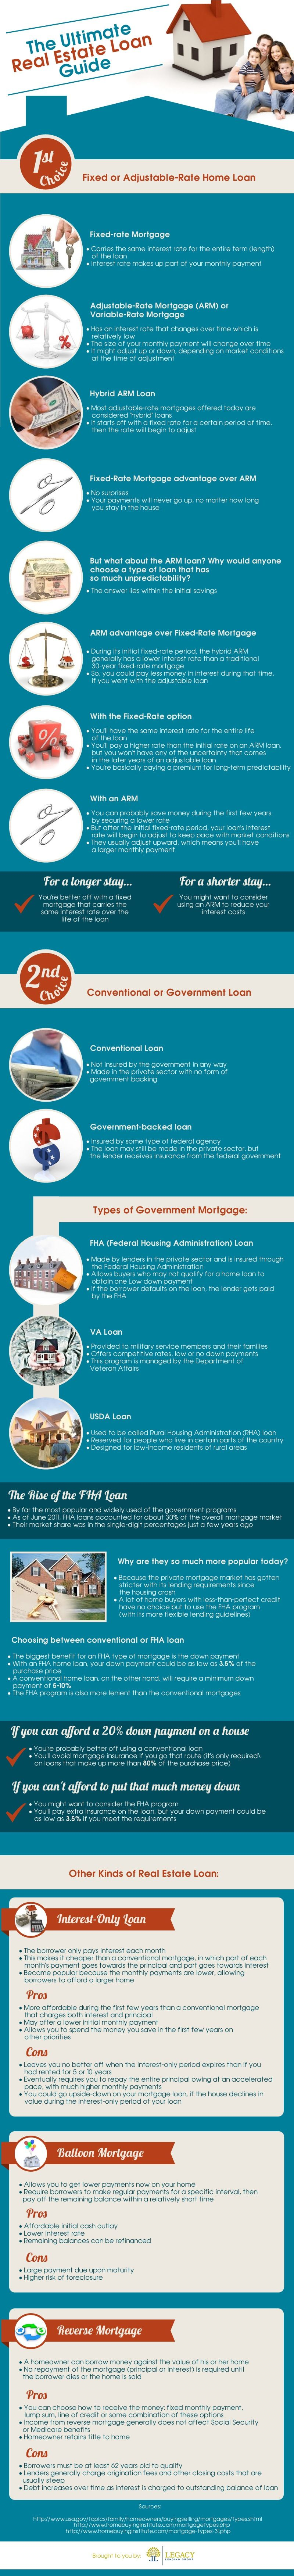 The Ultimate Real Estate Loan Guide Mortgage Payment Calculator Infographic Health Mortgage Loans